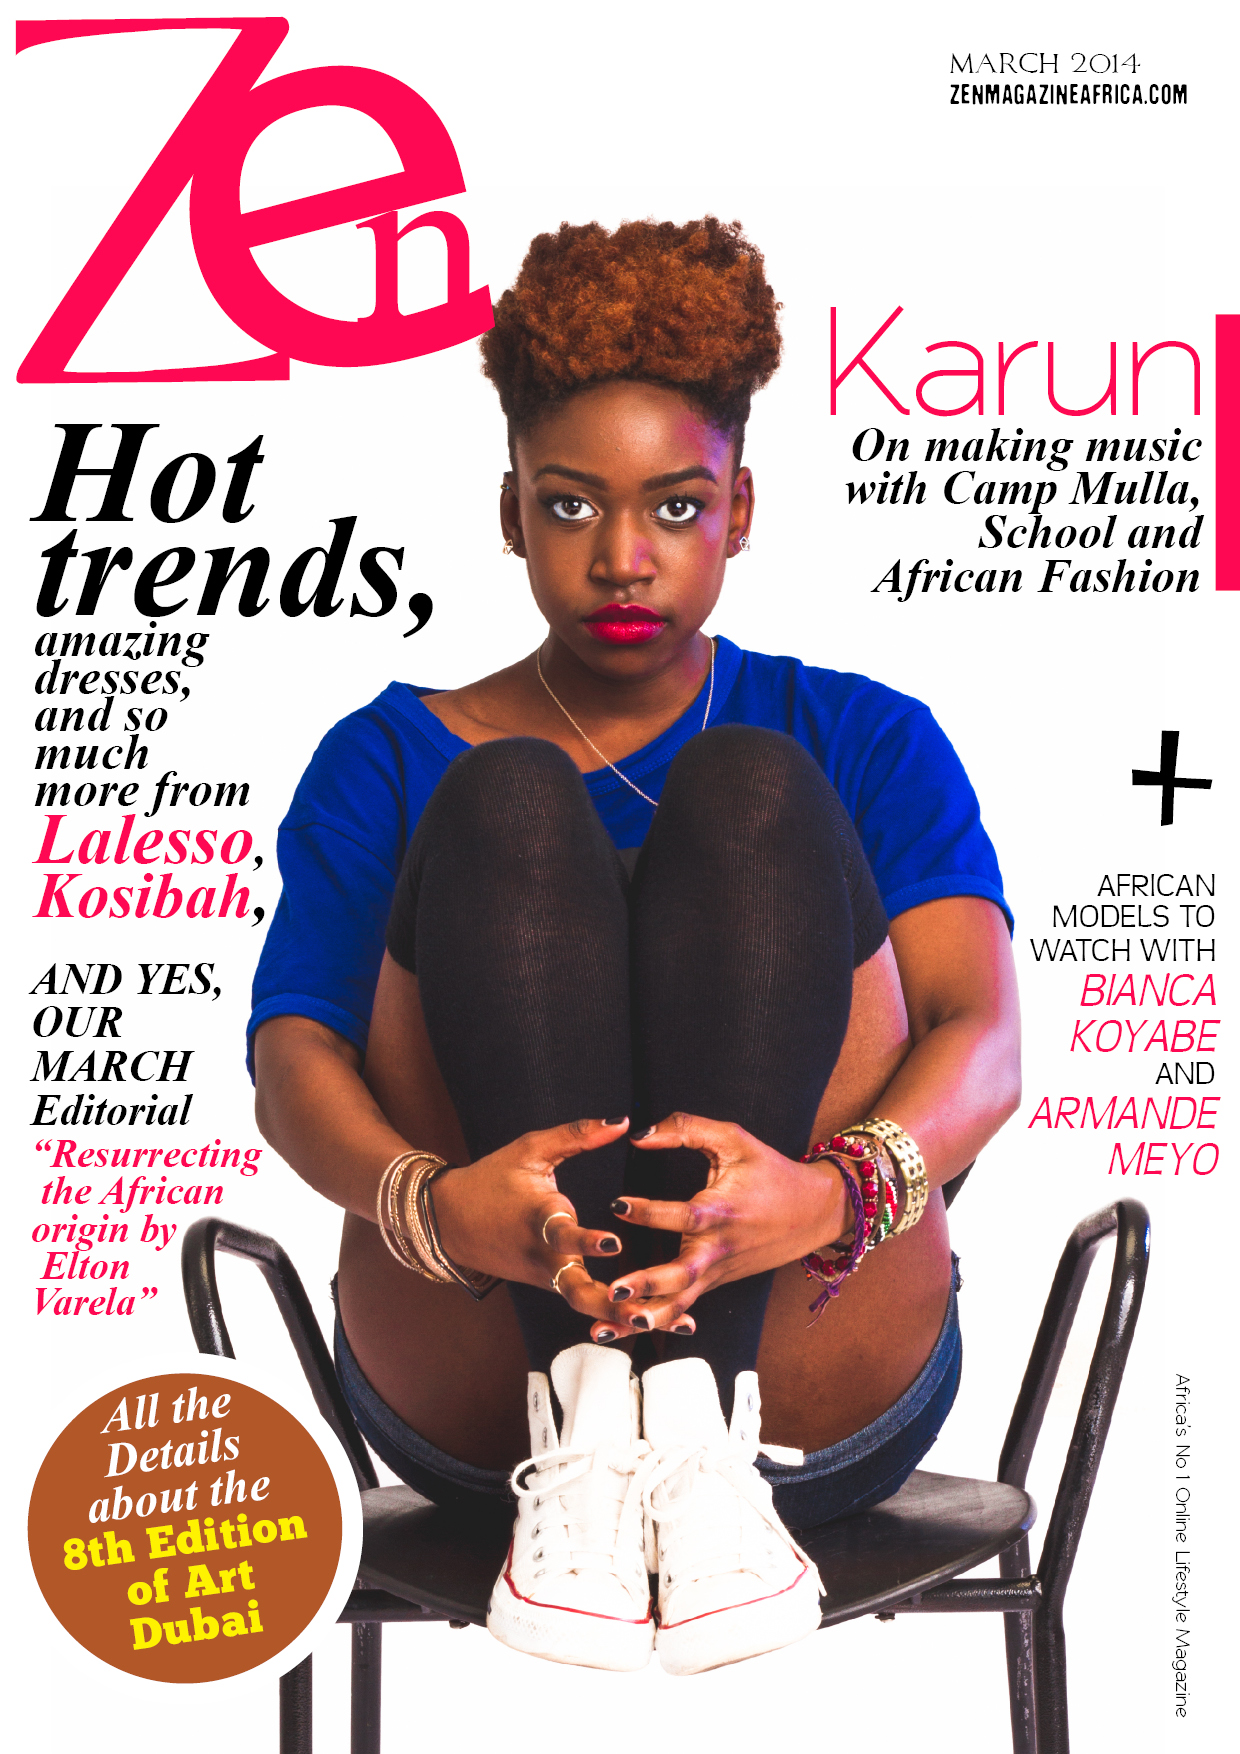 Zen+Magazine+Karun+Mungai+March+20